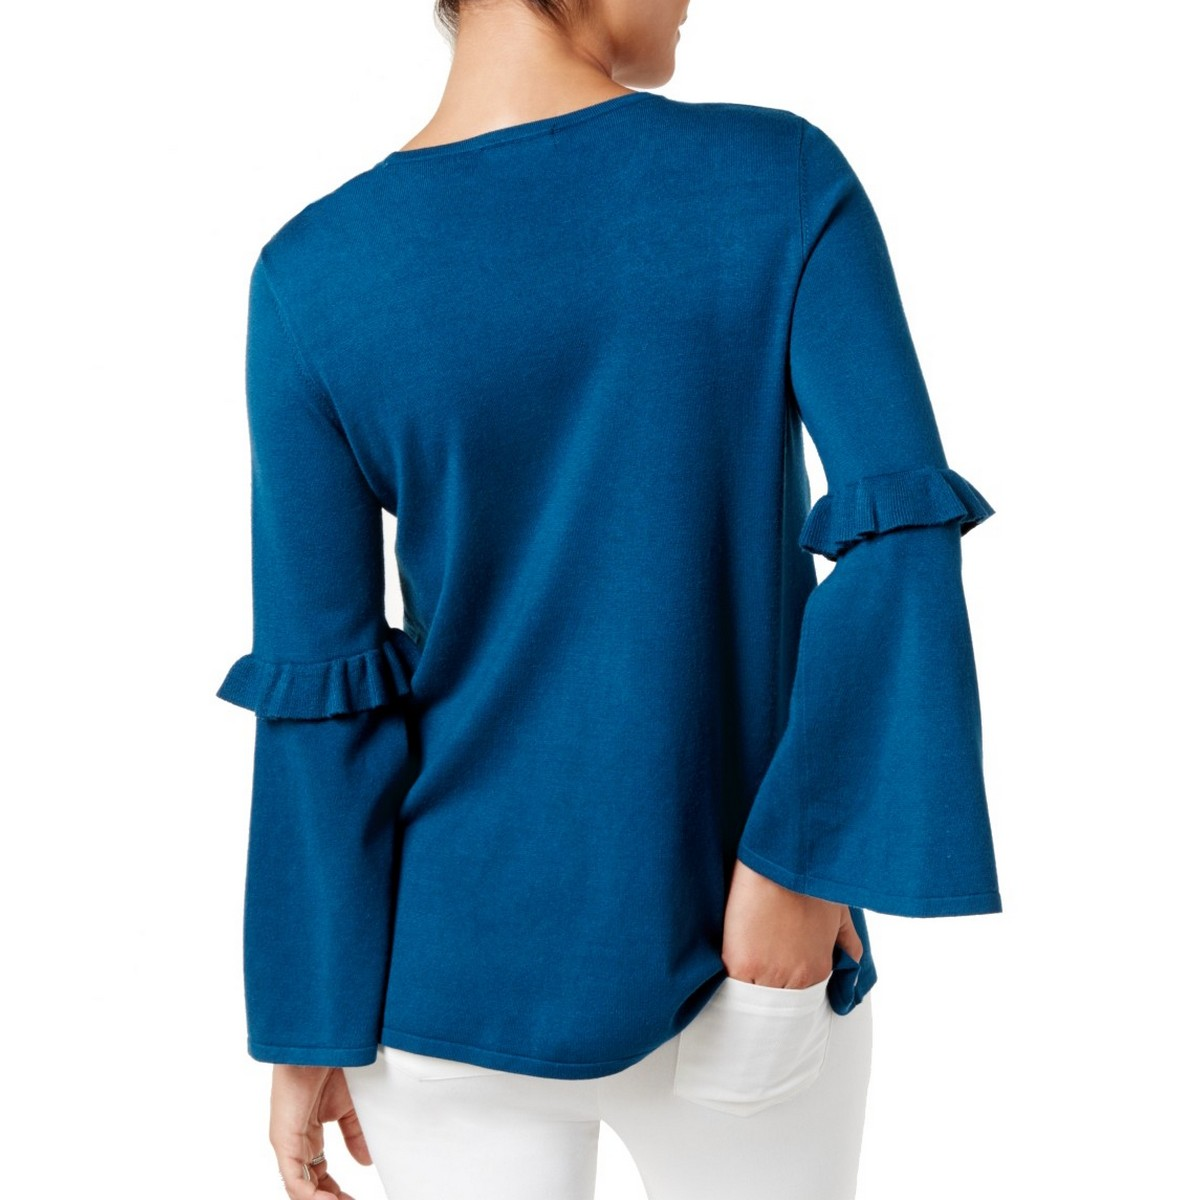 ALFANI-NEW-Women-039-s-Embroidered-Bell-Sleeves-Crewneck-Sweater-Top-TEDO thumbnail 4